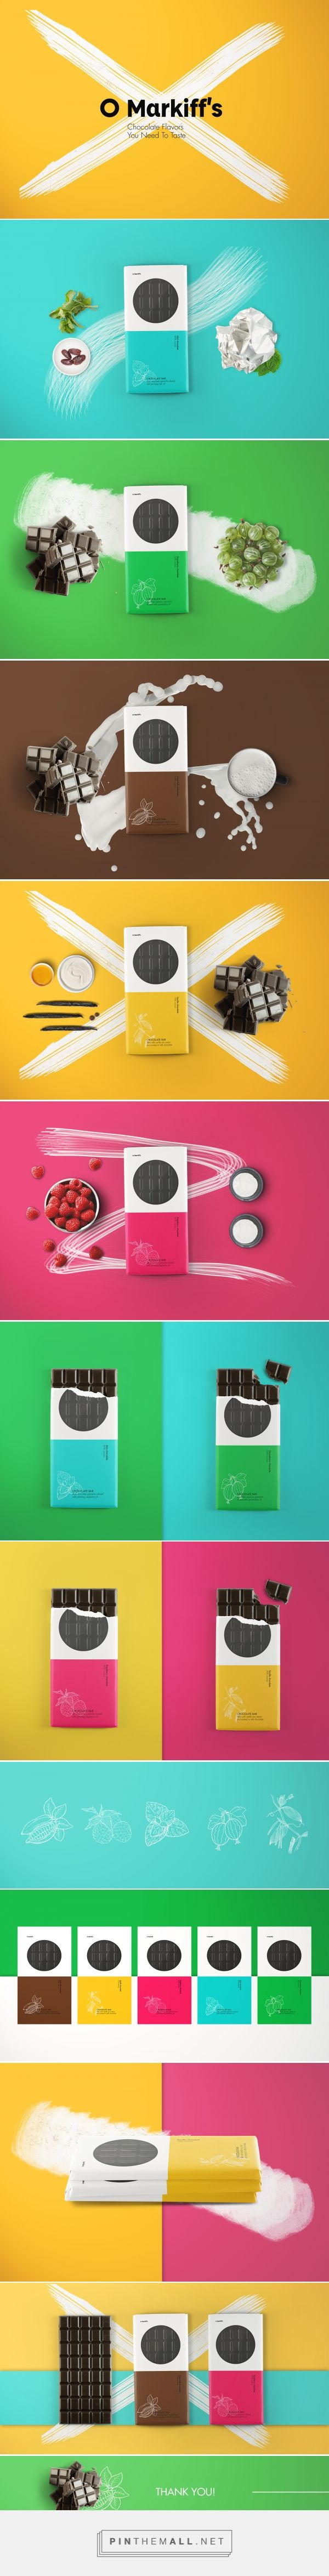 O Markiff's Chocolate Branding and Packaging by Pawel Kociszewski | Fivestar Branding Agency – Design and Branding Agency & Curated Inspiration Gallery